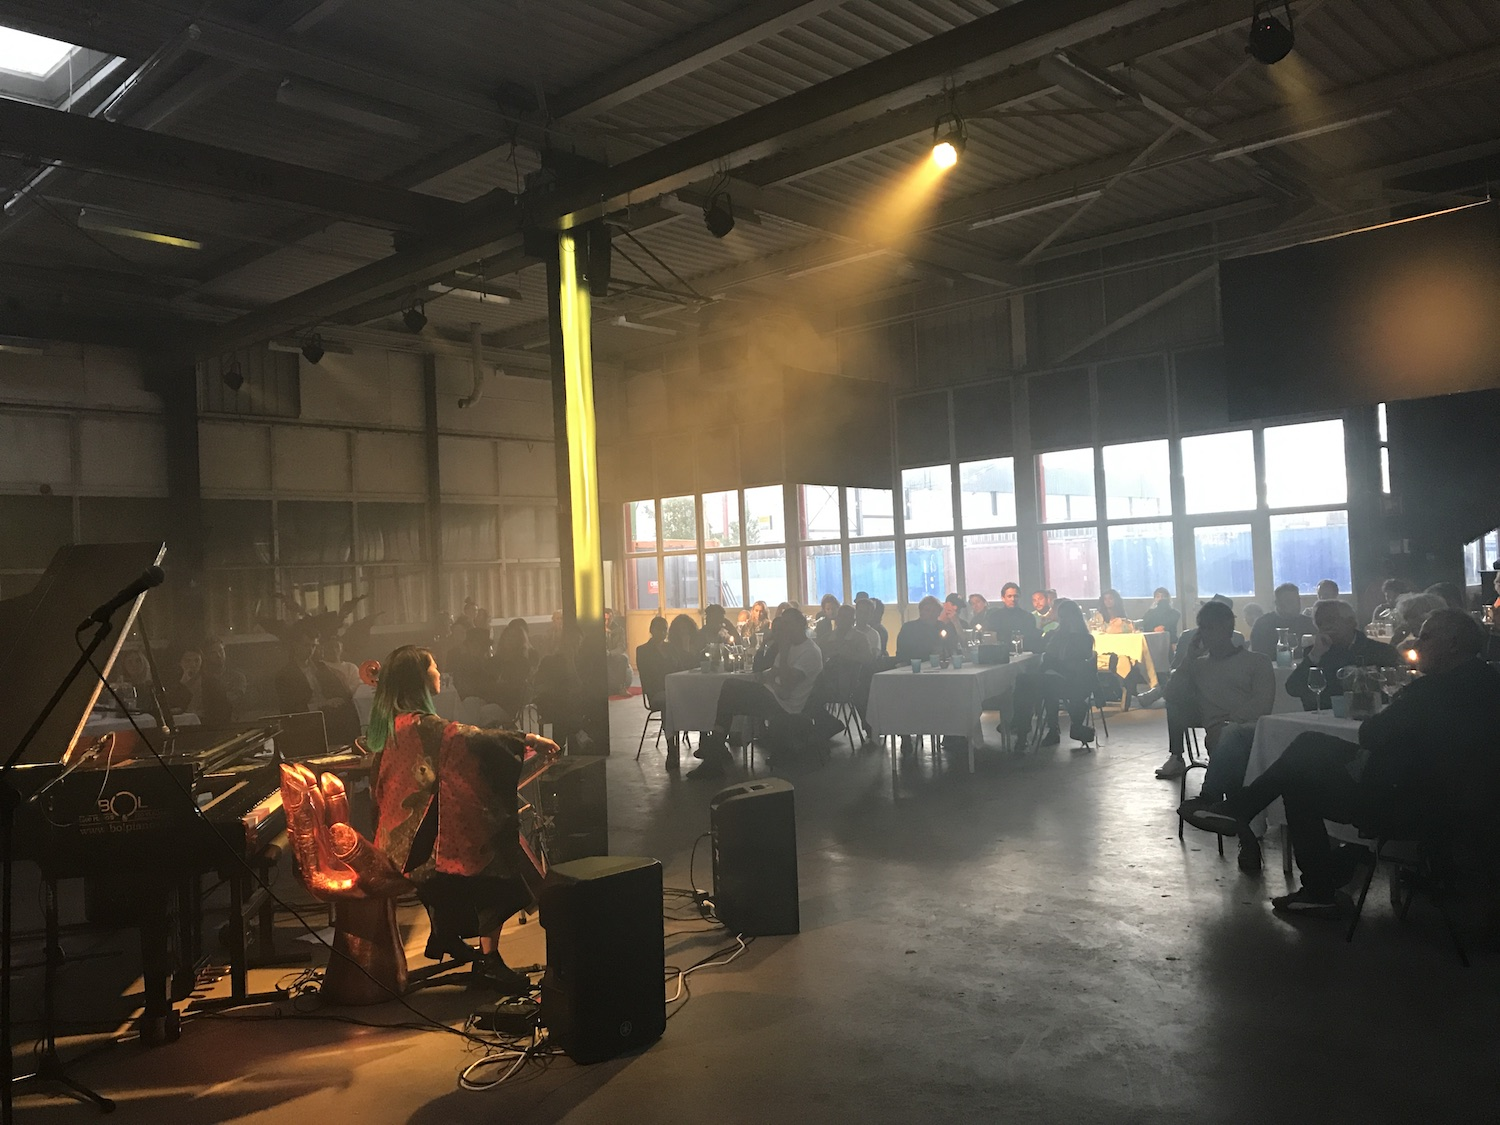 Basisklanken at Lofi, a classical-ambient dinner in a warehouse for 100 guests